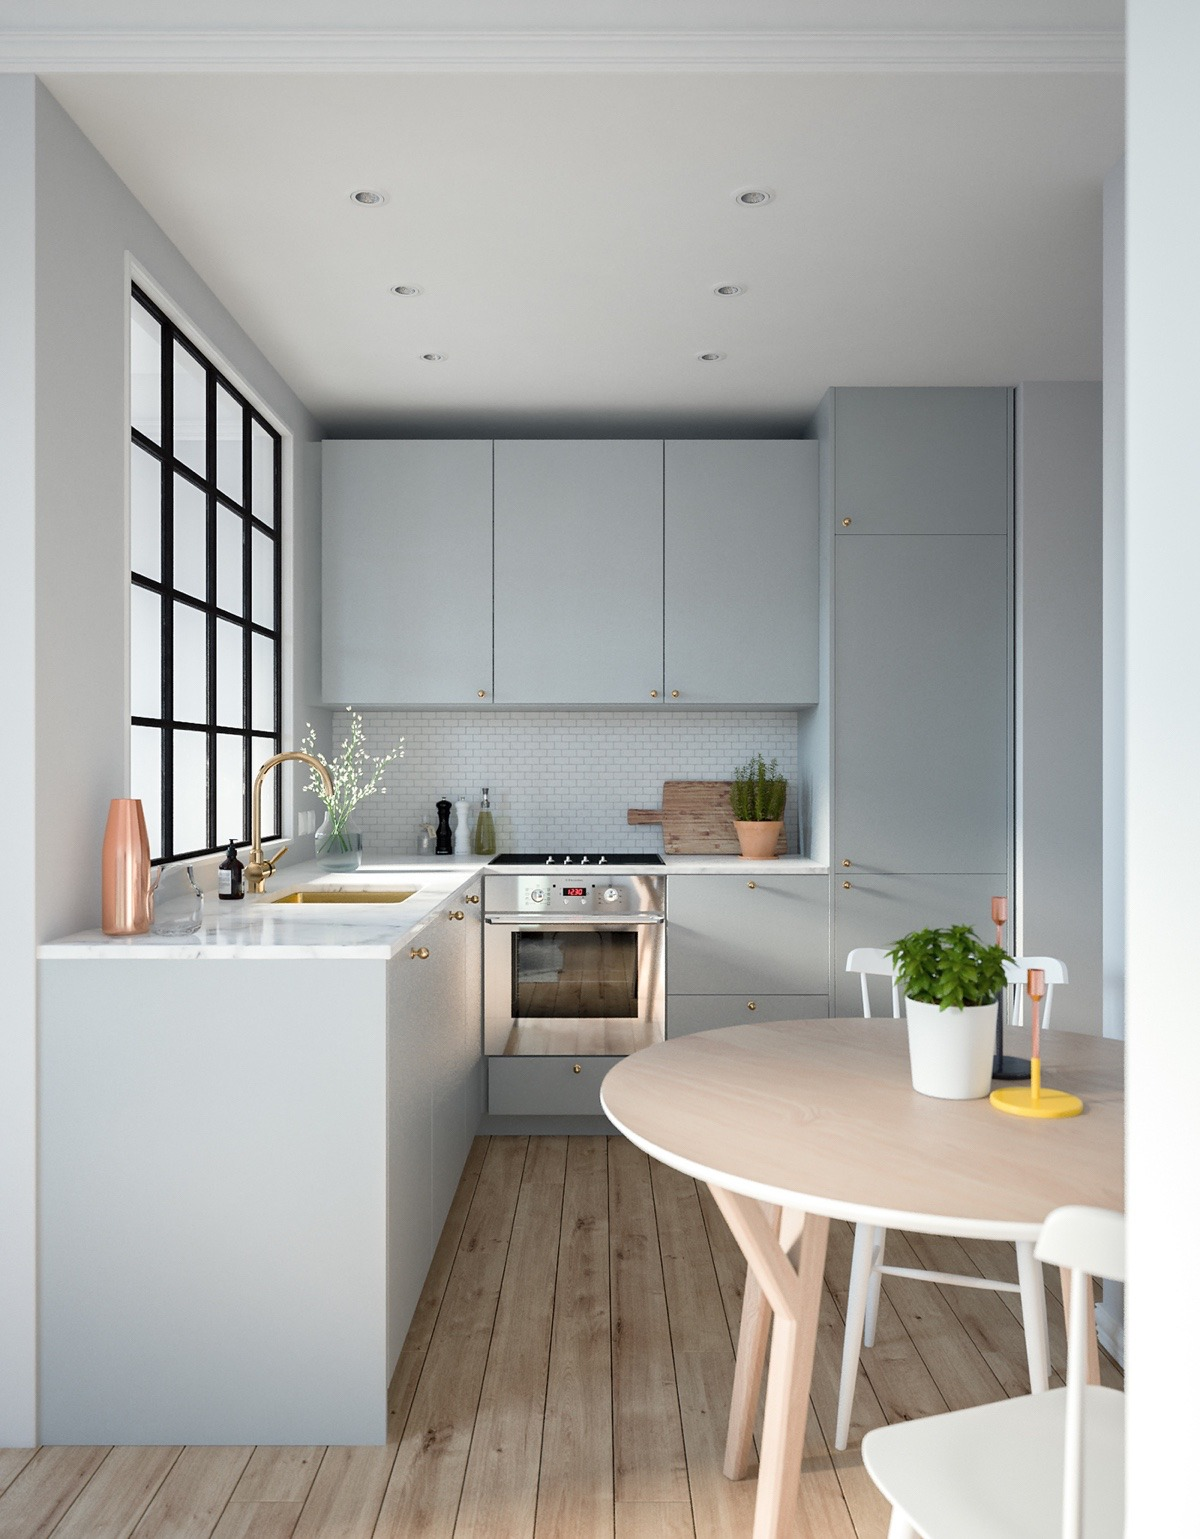 Unique Pastel And Brass Kitchen Decor - 3 modern studio apartments with glass walled bedrooms